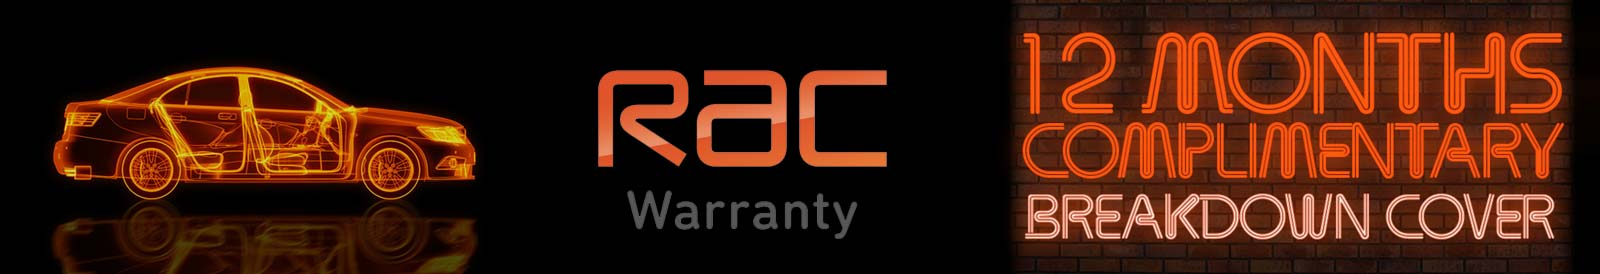 RAC Warranty 12 months free breakdown cover - simon shield cars